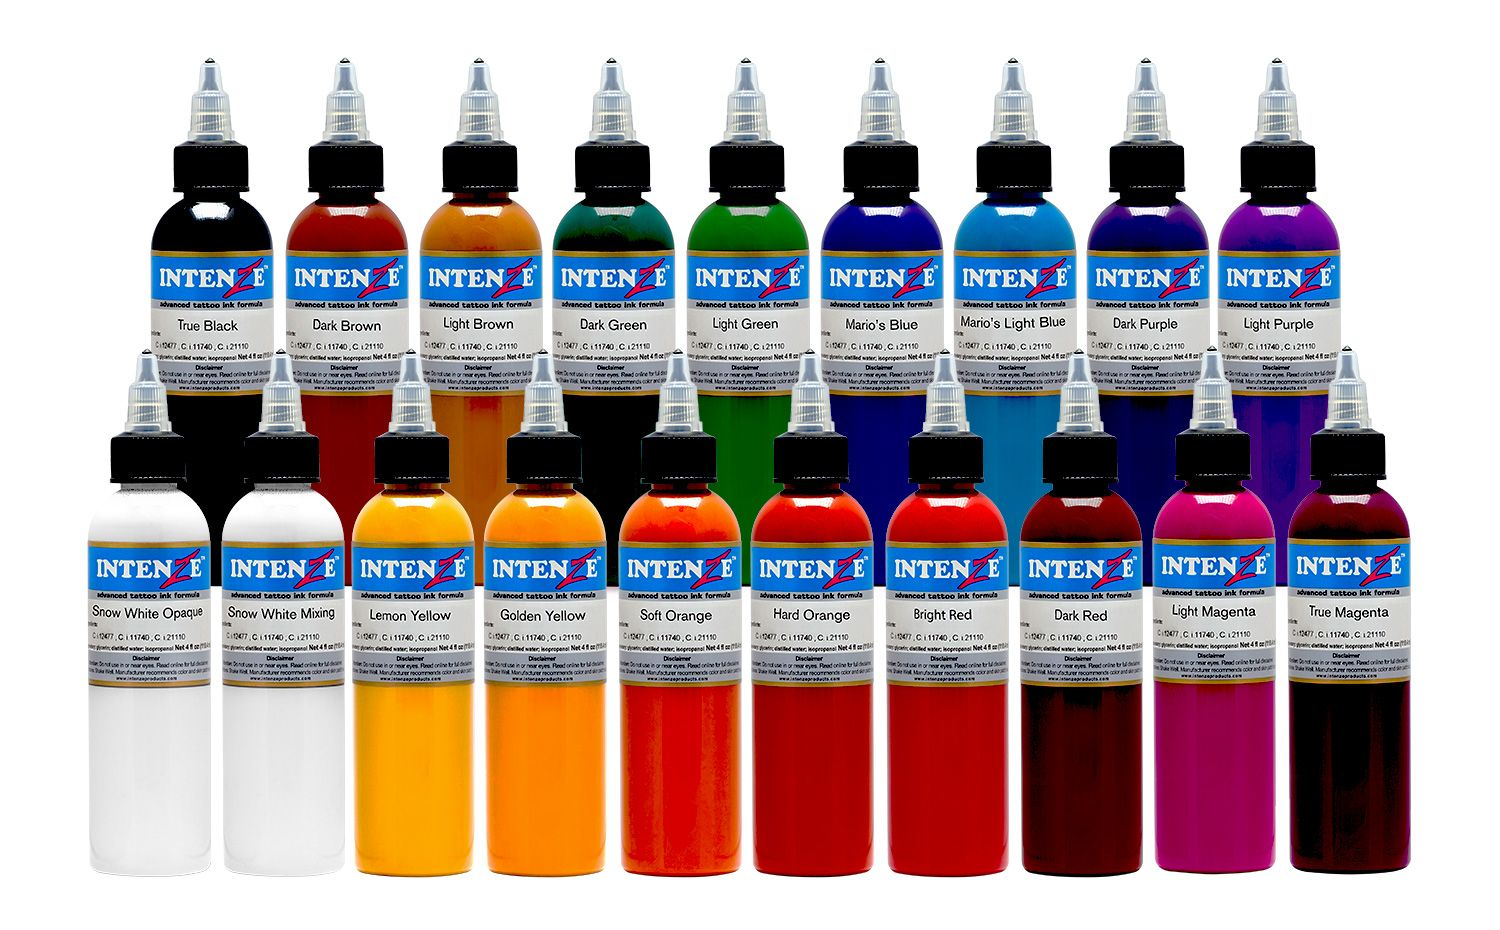 19 Color Tattoo Ink Set In 2020 Best Tattoo Ink Tattoo Ink Sets Ink Tattoo